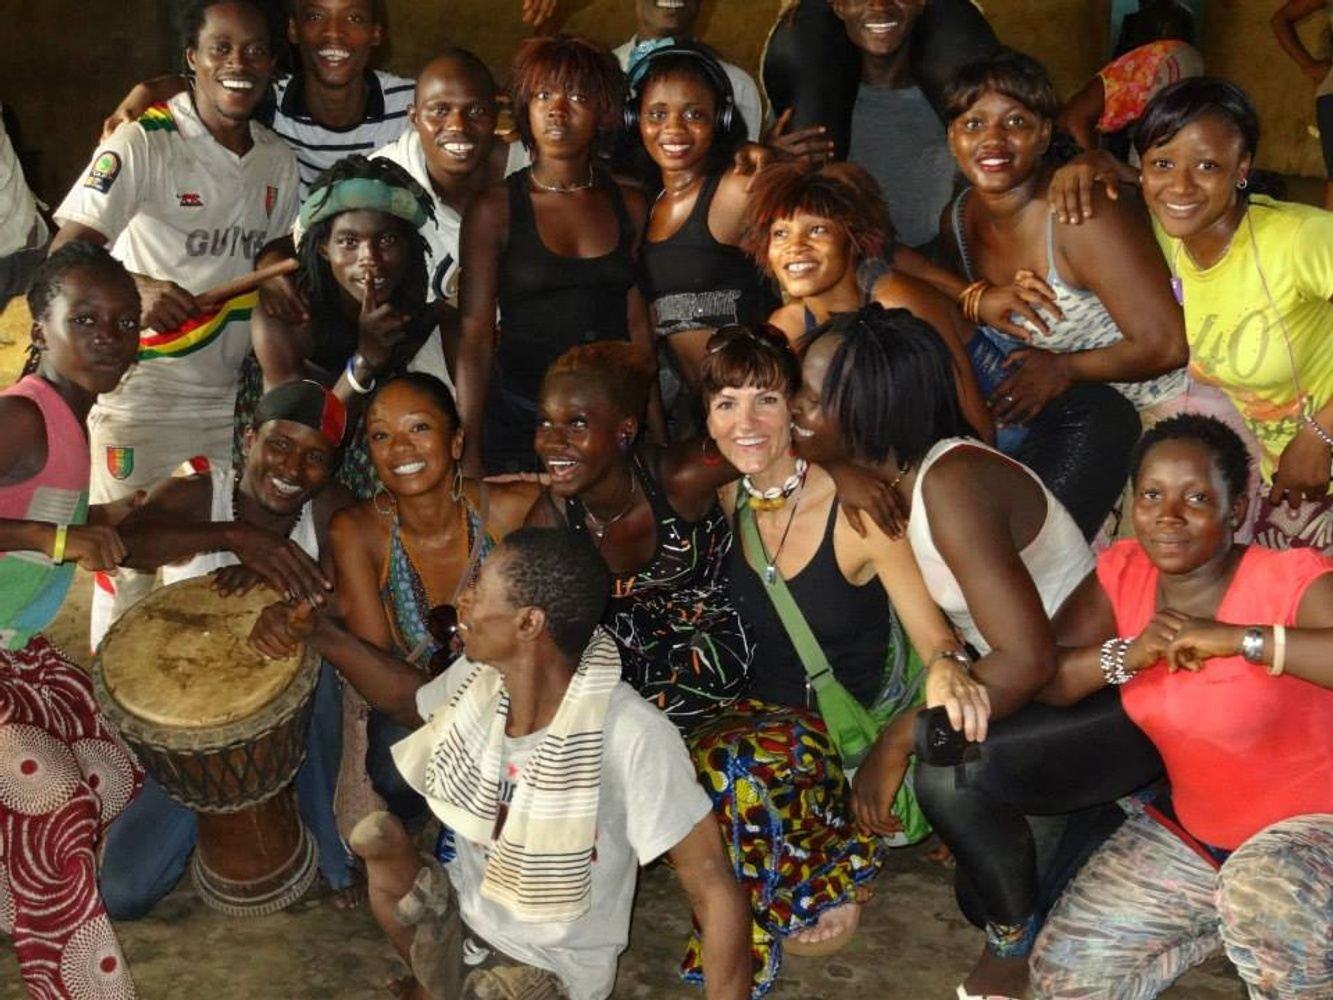 Discover Guinea - A Dance, Music and Culture Tour